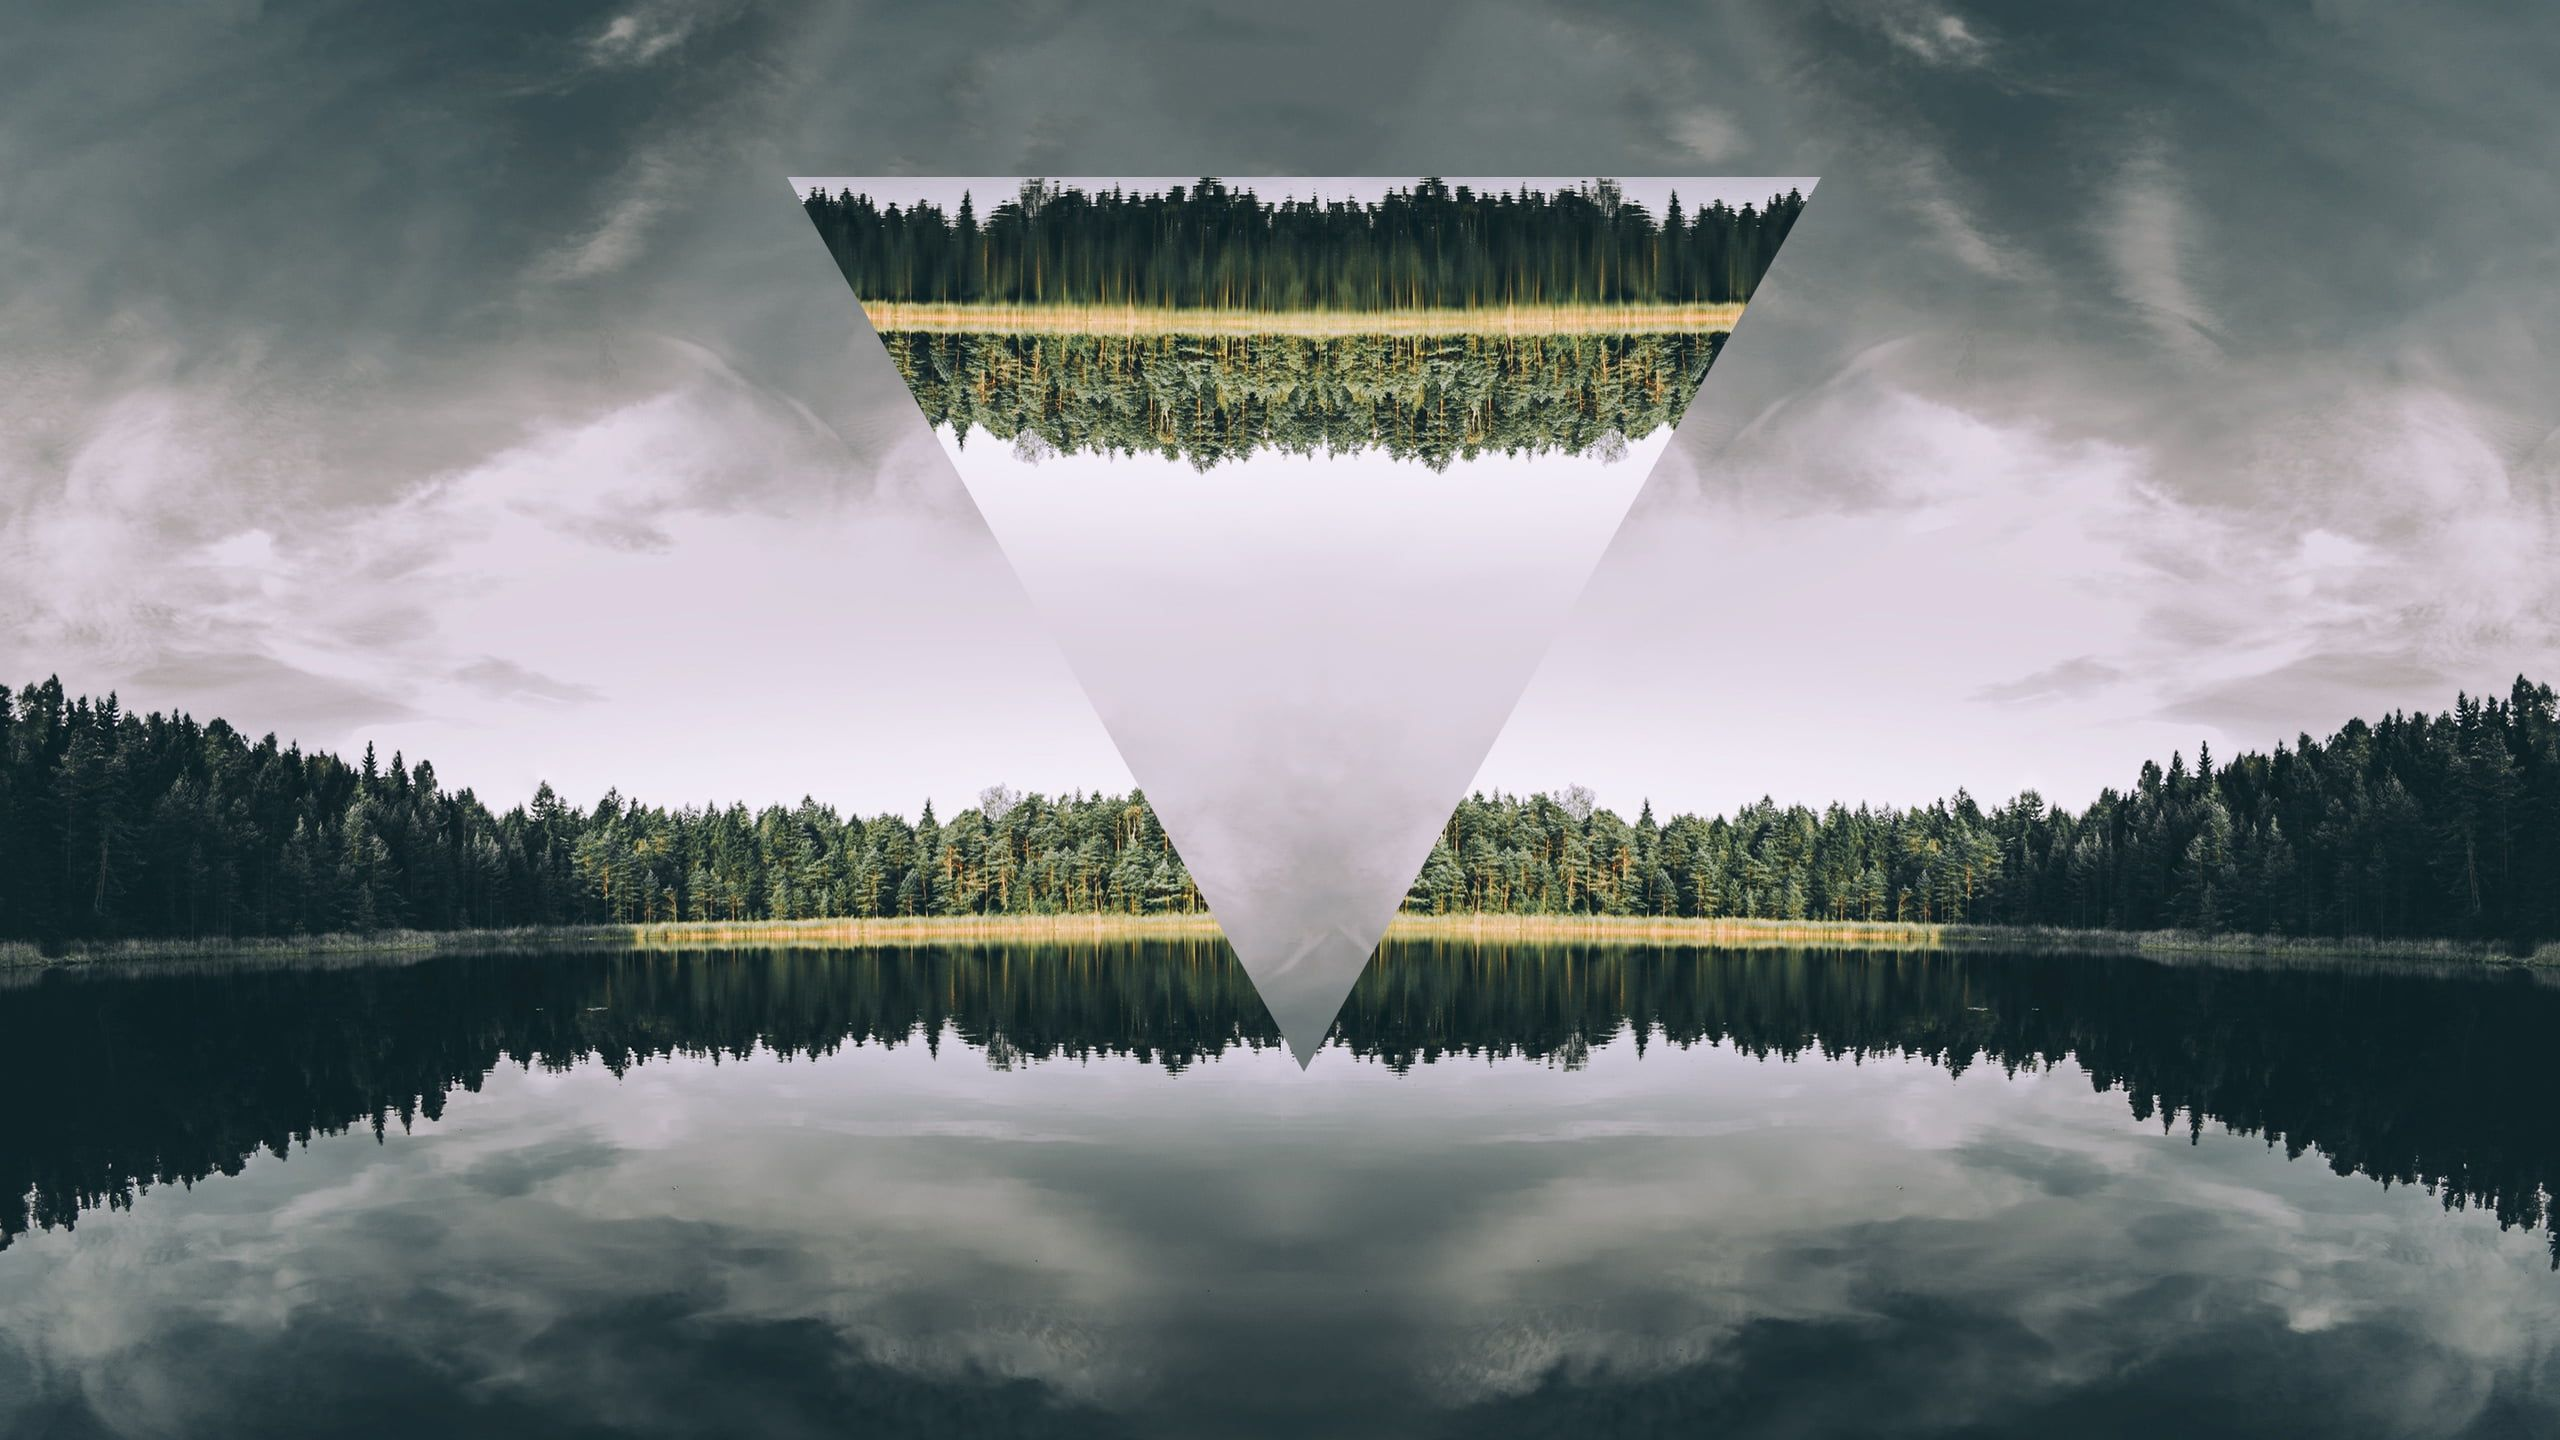 2560x1440 Body of water surrounded by green trees under white and grey ...